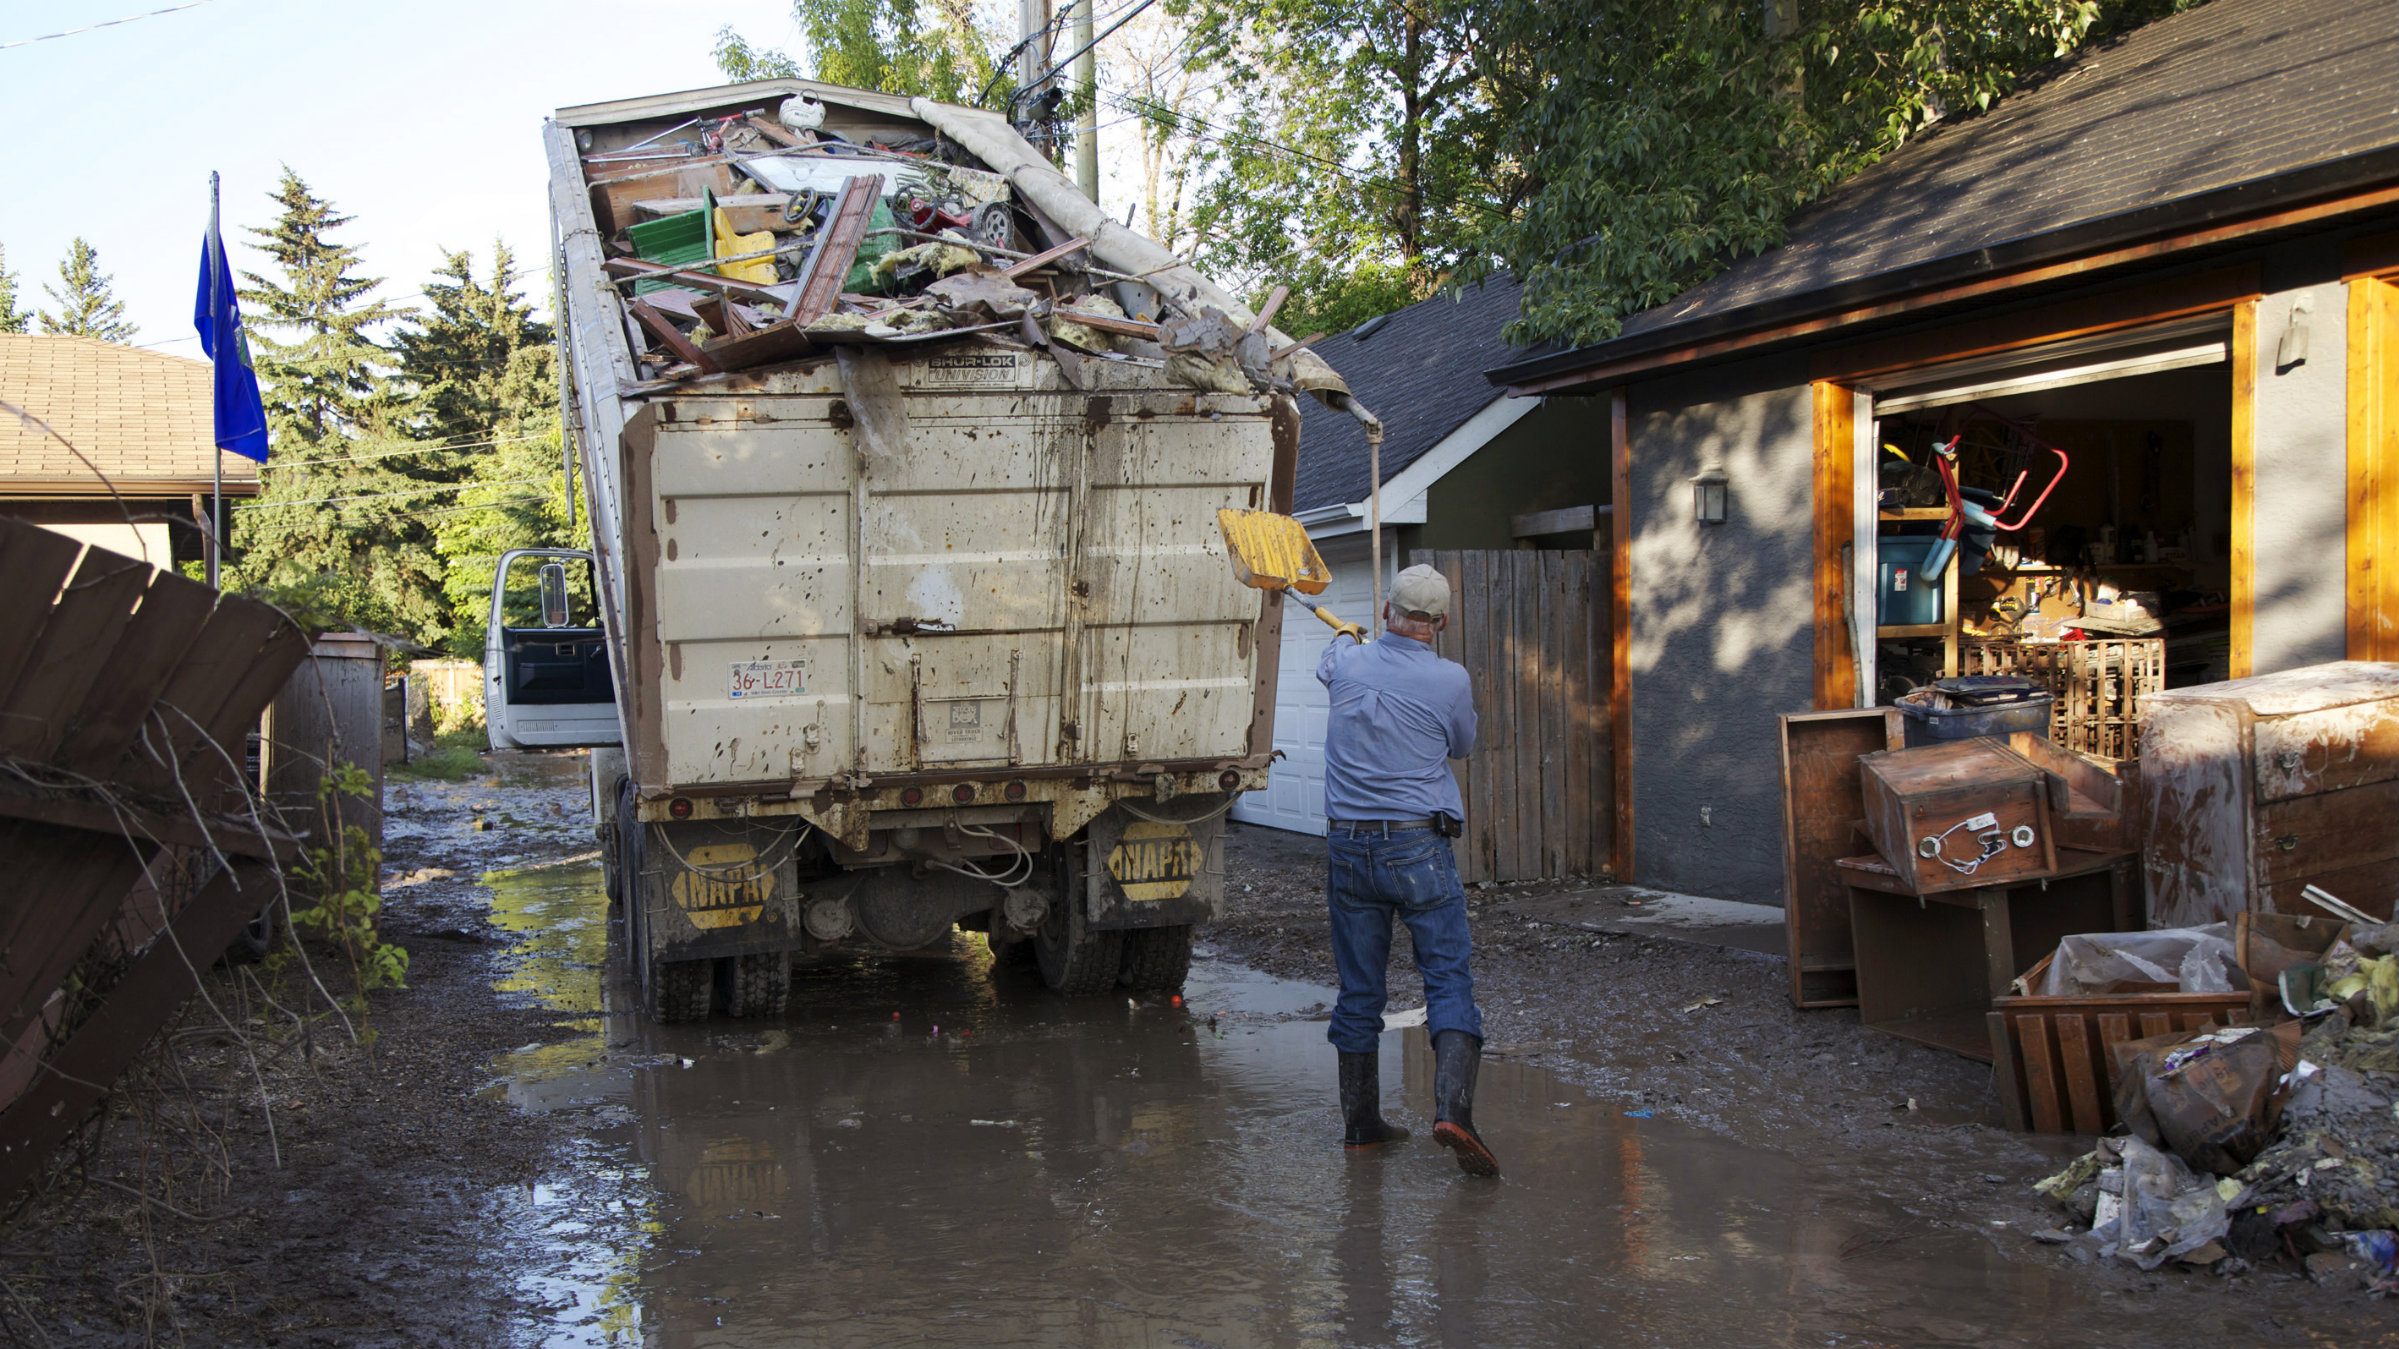 A man loads a dump truck with garbage as he clears out his house.